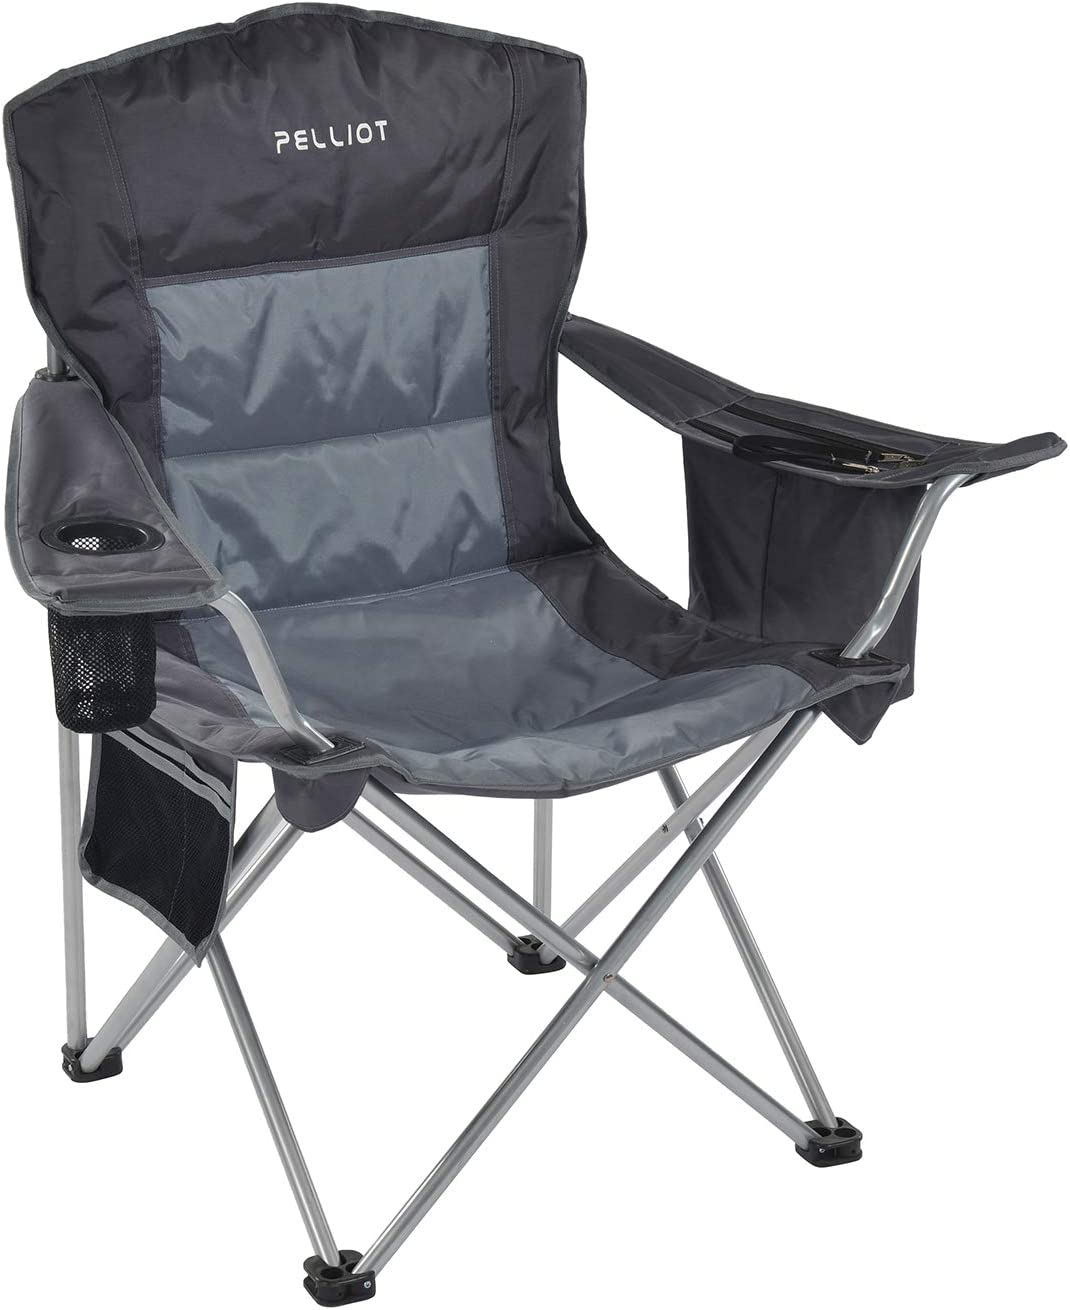 PELLIOT Direct stock discount Portable Camping Chair Max 46% OFF Heavy 3 Supports Lumbar Duty Back